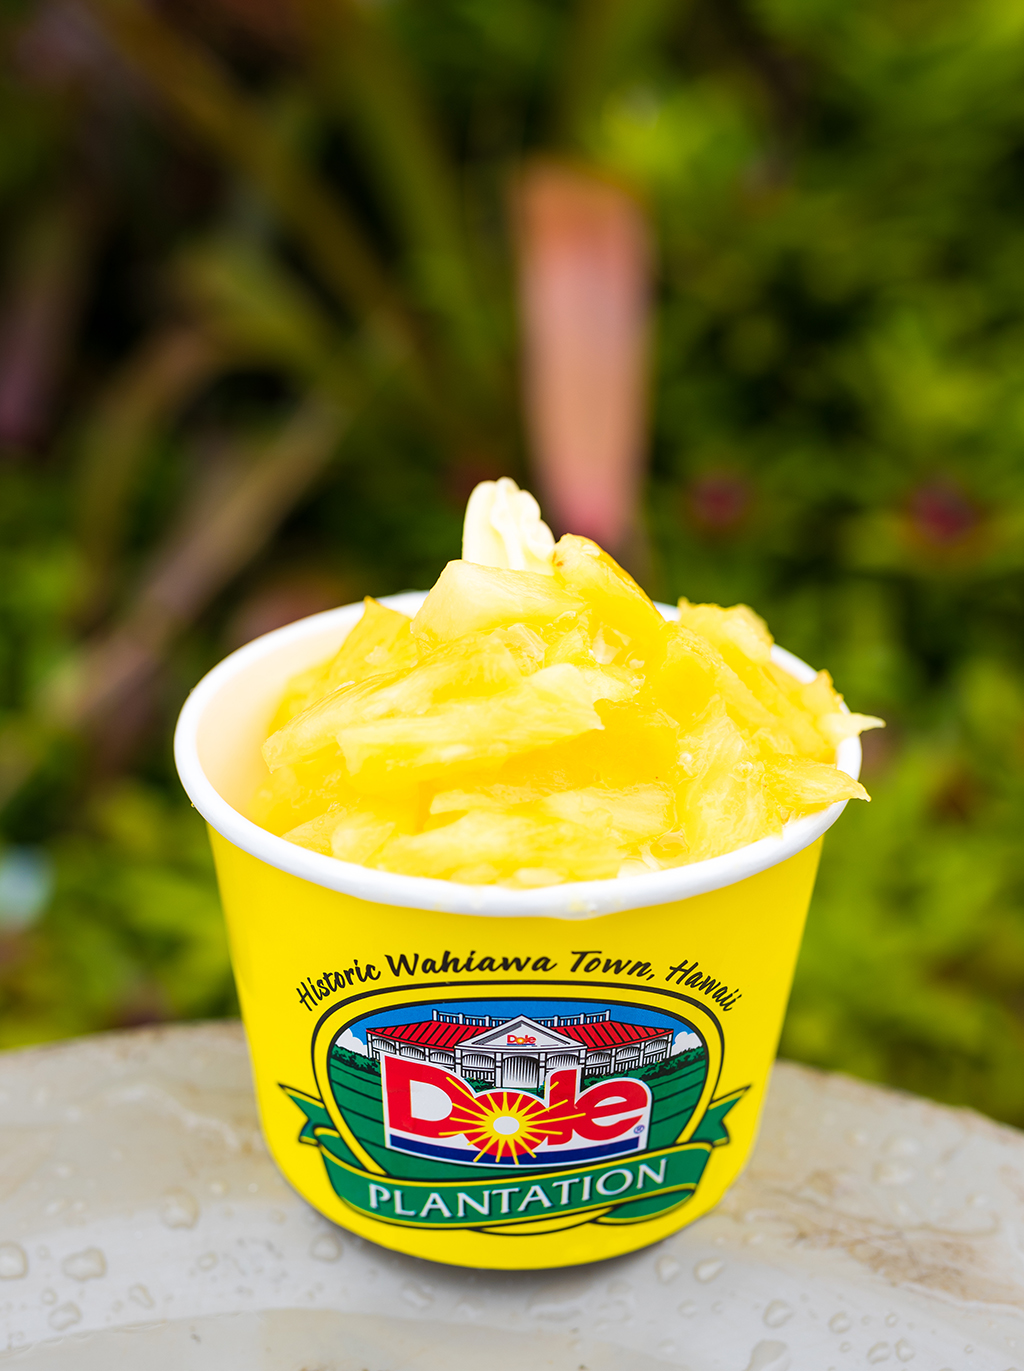 Dole Plantation Review Tips Travel Caffeine